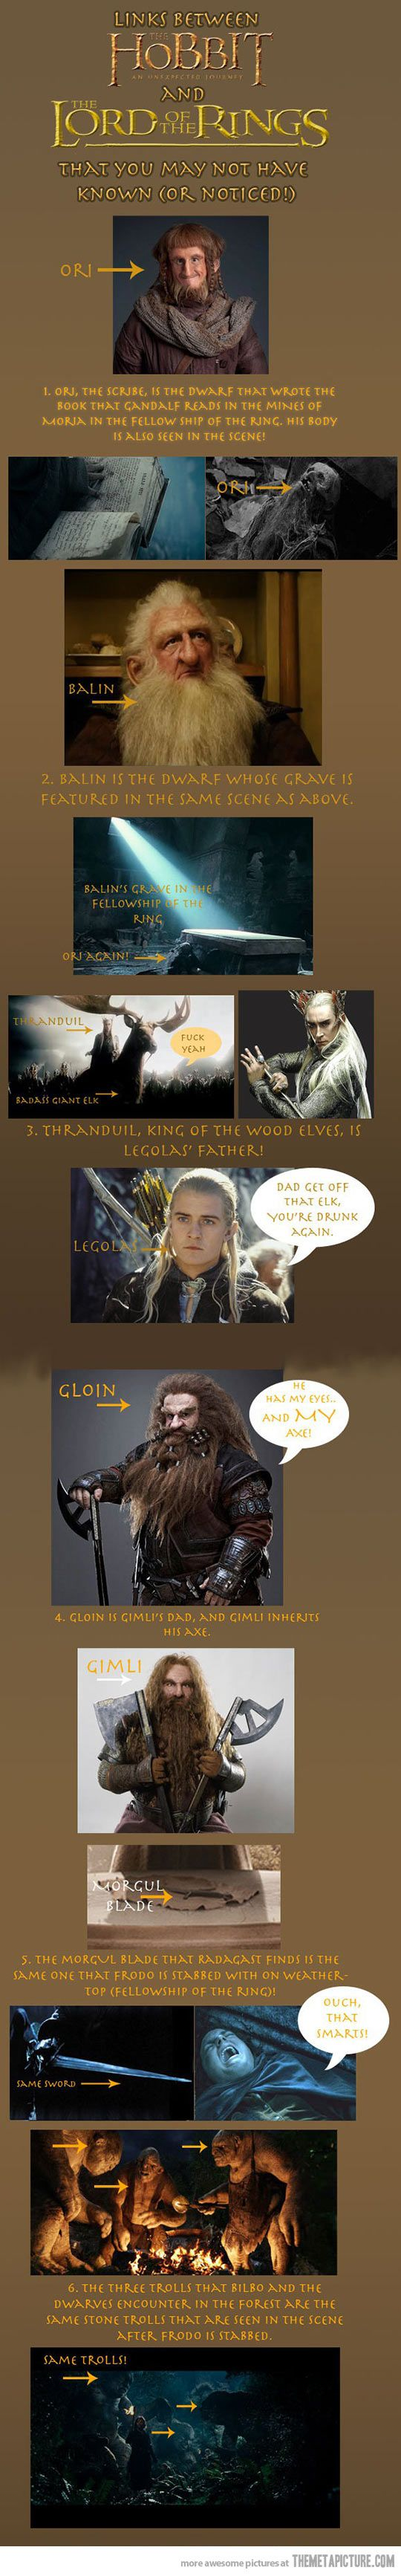 Links between The Hobbit and The Lord of the Rings (this will make me sad when i see the moria scene now :(  )